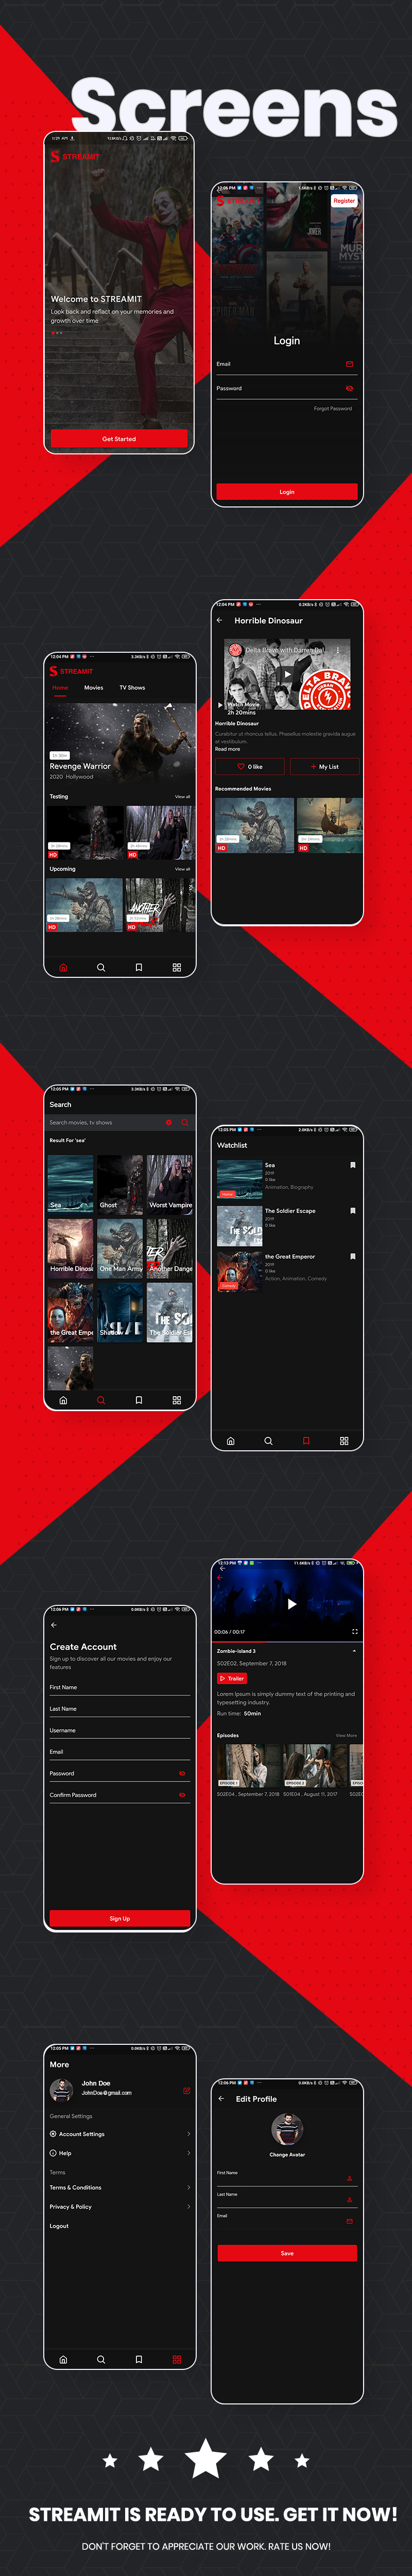 Best Video Streaming App | Streamit | Iqonic Design flutter full app for video streaming with wordpress backend Streamit MobileScreen1